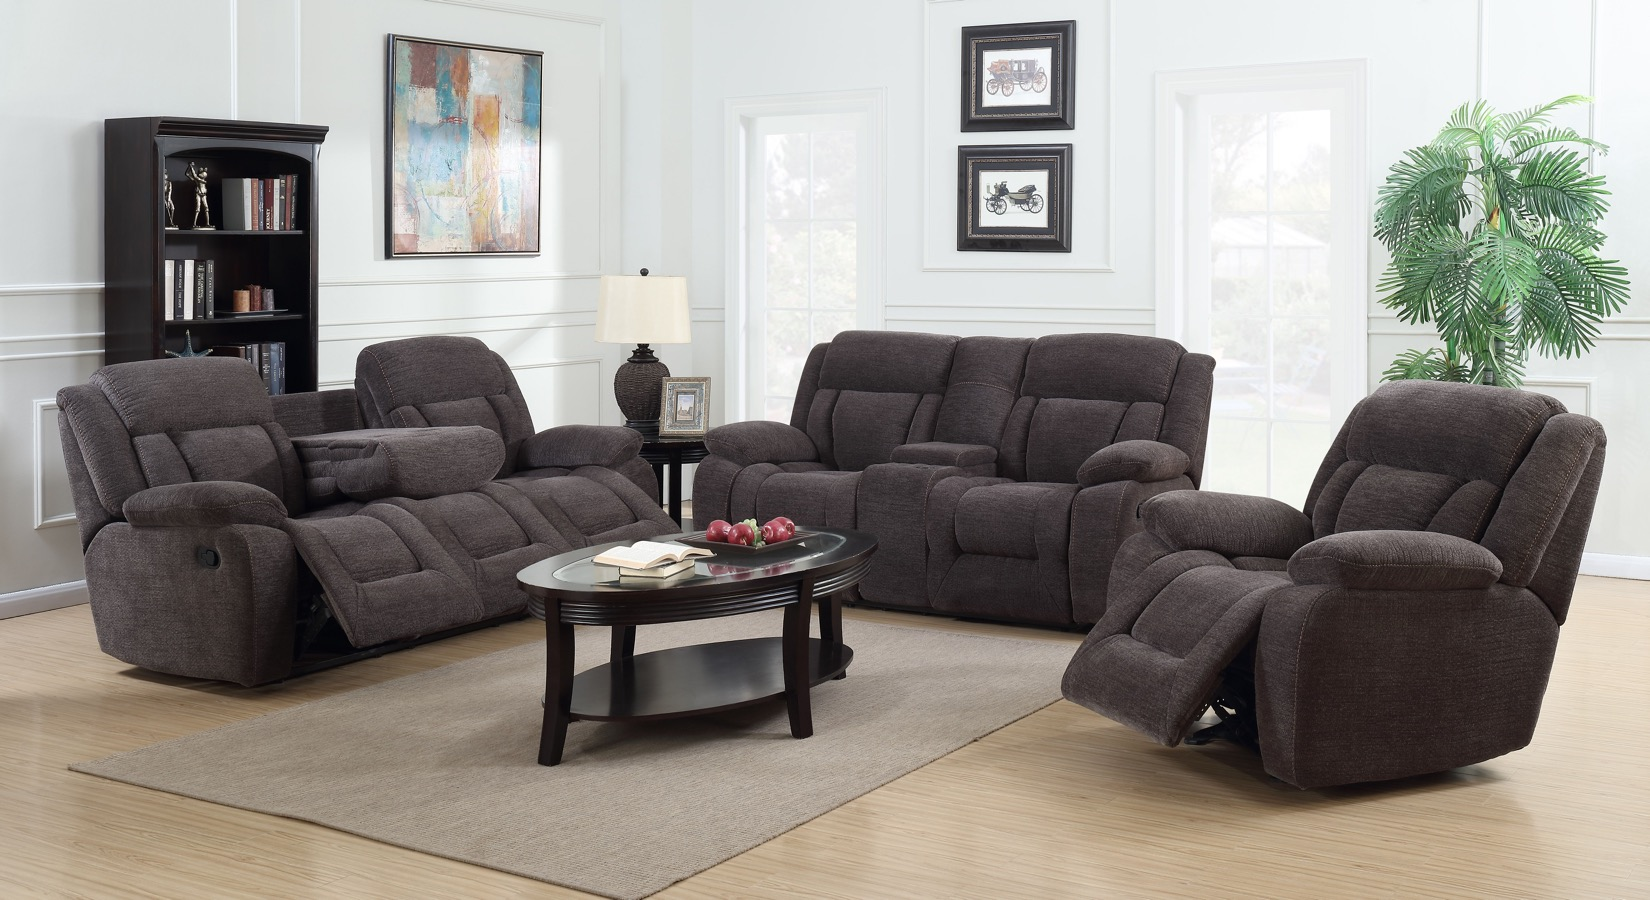 Charcoal Primo International sectional sofa with Mosaic Fabric